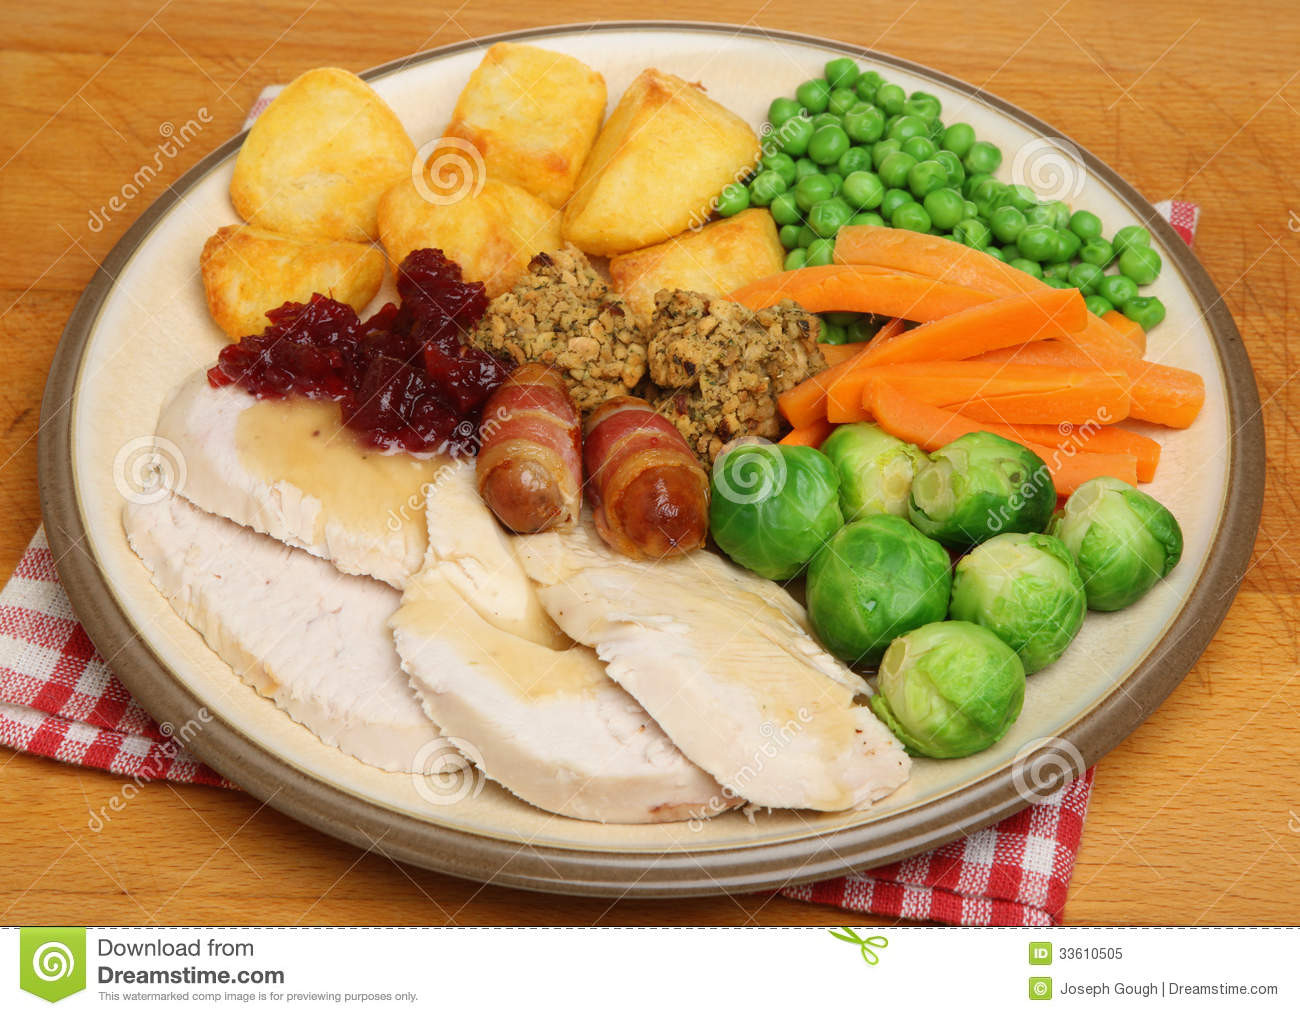 Christmas Dinner Vegetables  Christmas Dinner Roast Turkey Stock Image Image of